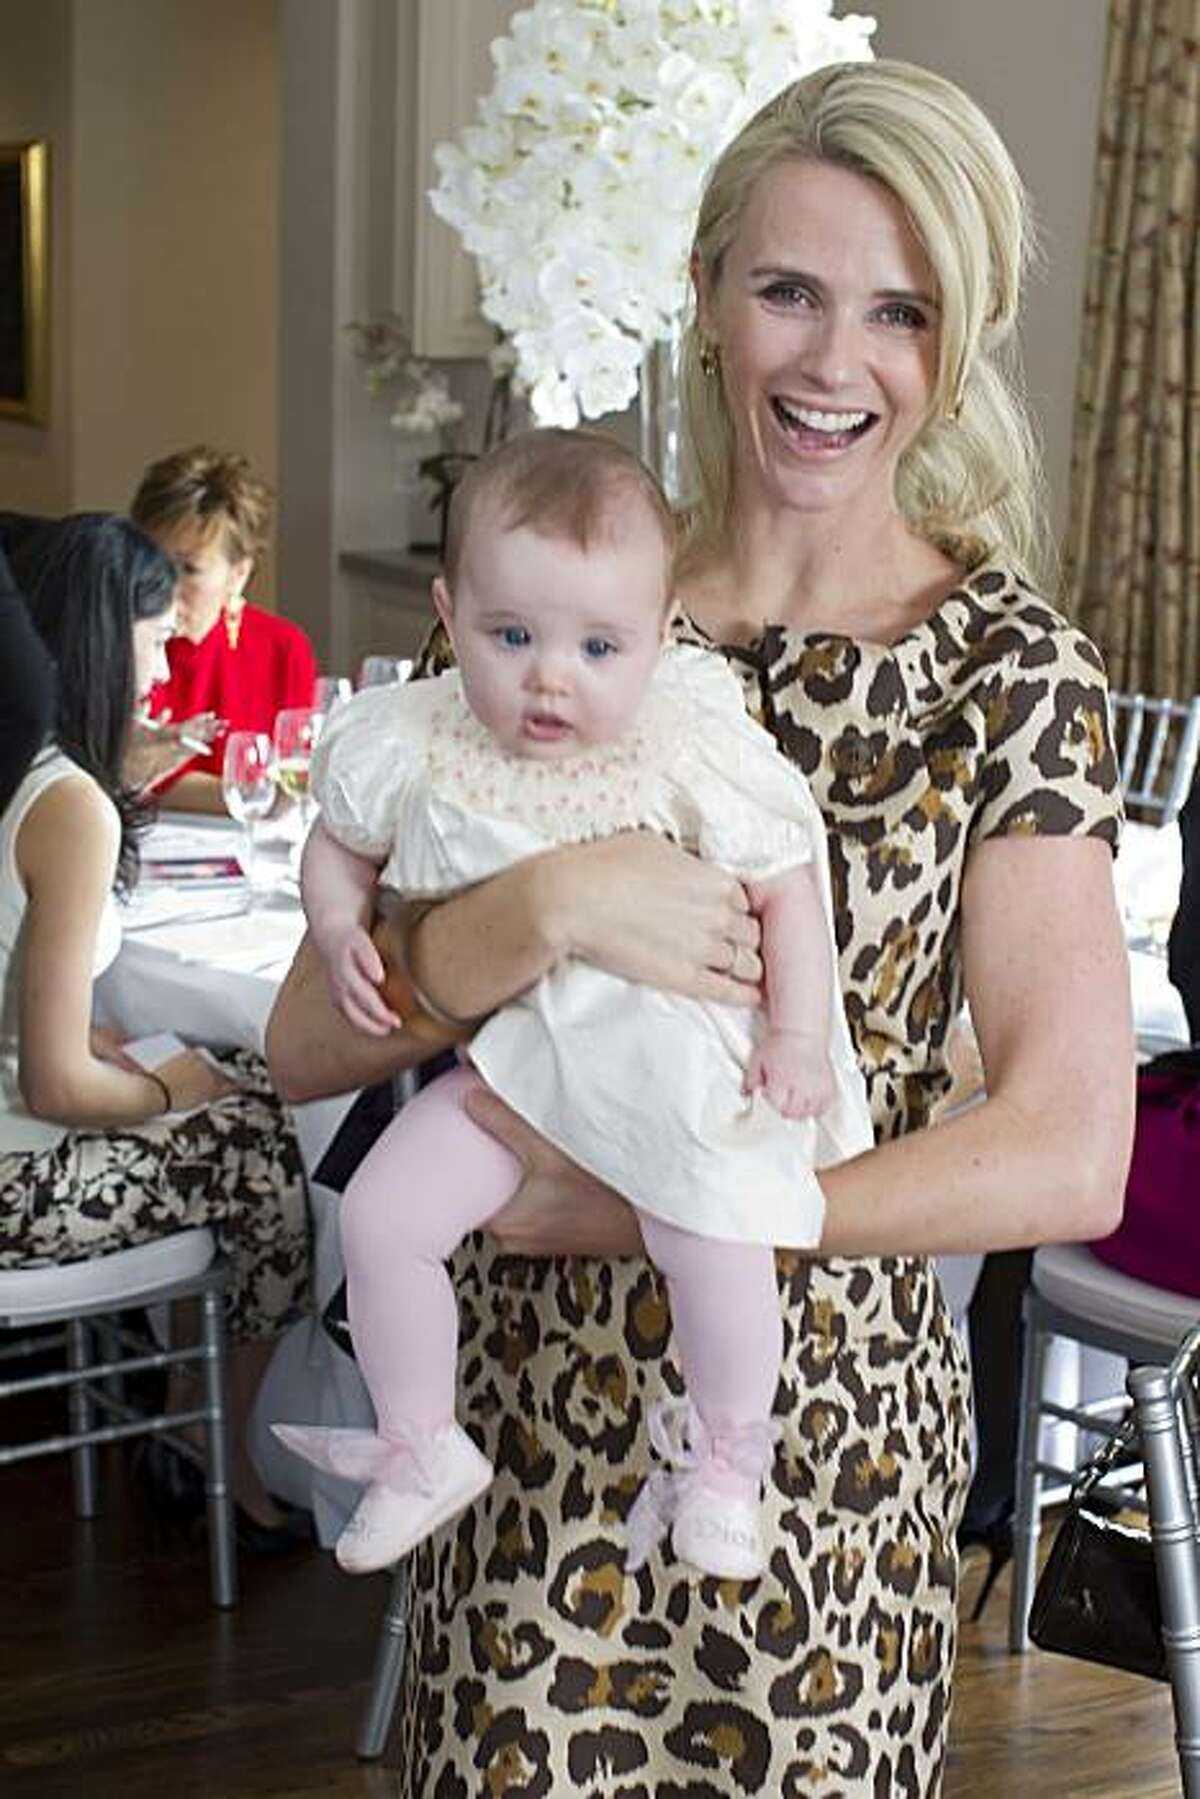 Select pieces from the archives of Christian Dior in Paris were shipped and put on display at the home of Pamela Joyner at a luncheon to introduce stylish San Francisco women to Dior's history, and its spring 2010 collection of clothing. Here, Jennifer Siebel Newsom, and her baby daughter, Montana, steal the attention away from models parading in Dior's summer 2010 collection. Jennifer Siebel Newsom, Montana Newsom